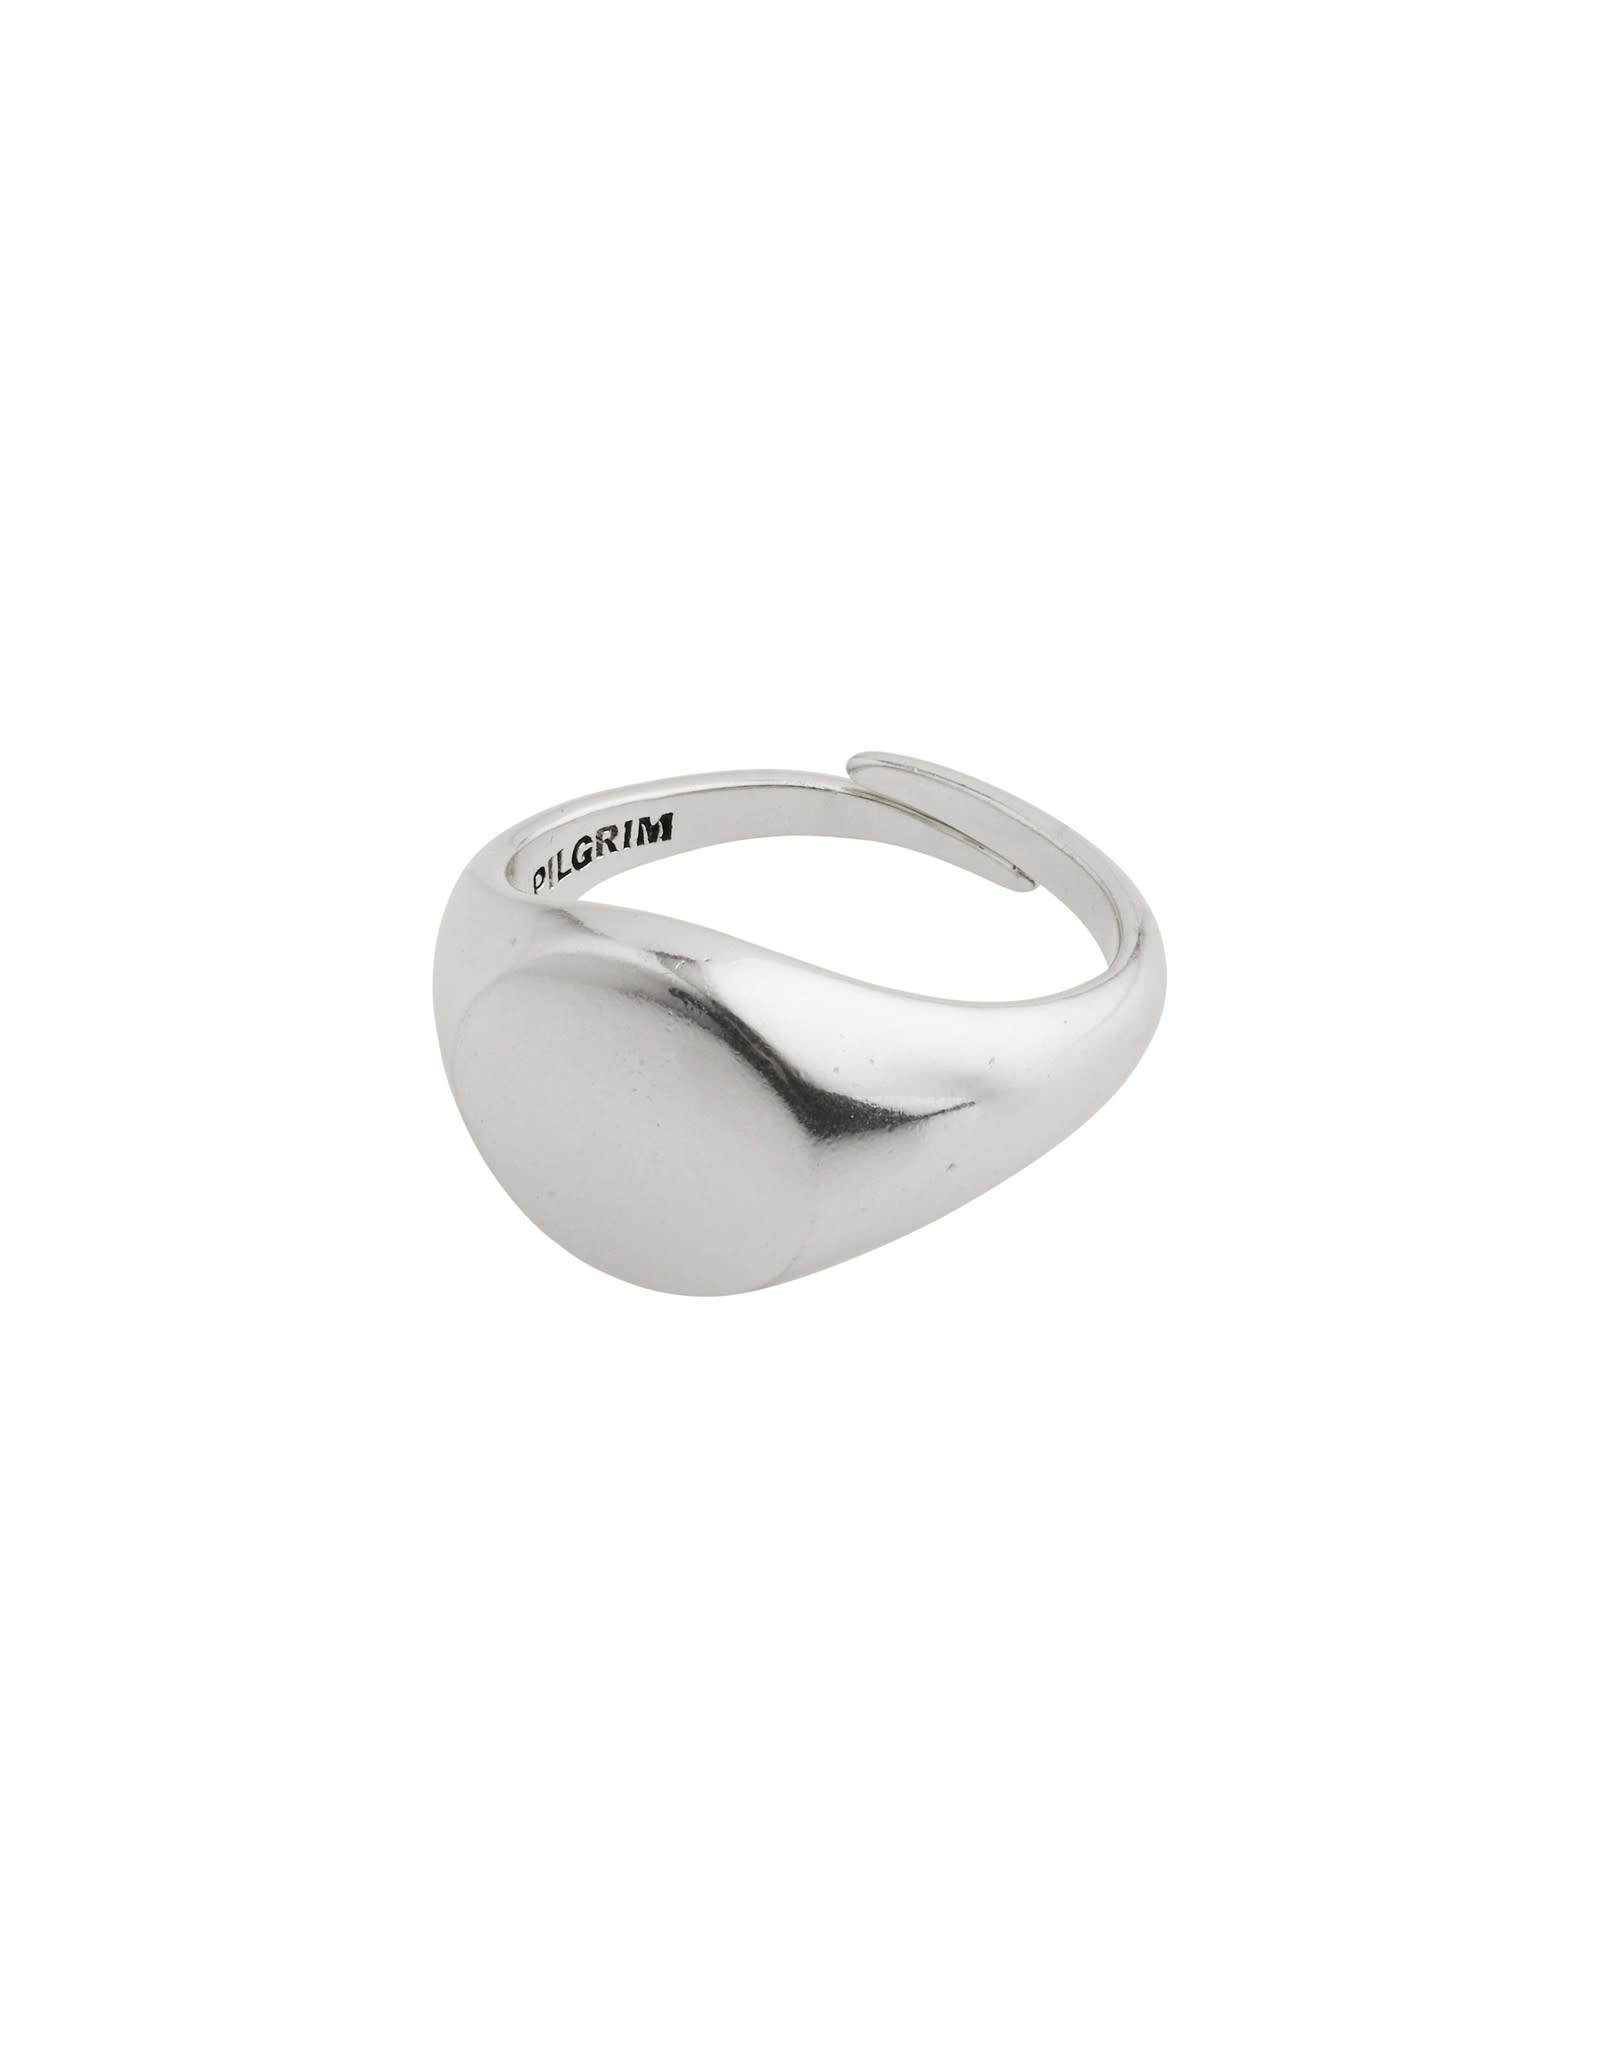 Pilgrim Sensitivity Ring - Silver Plated